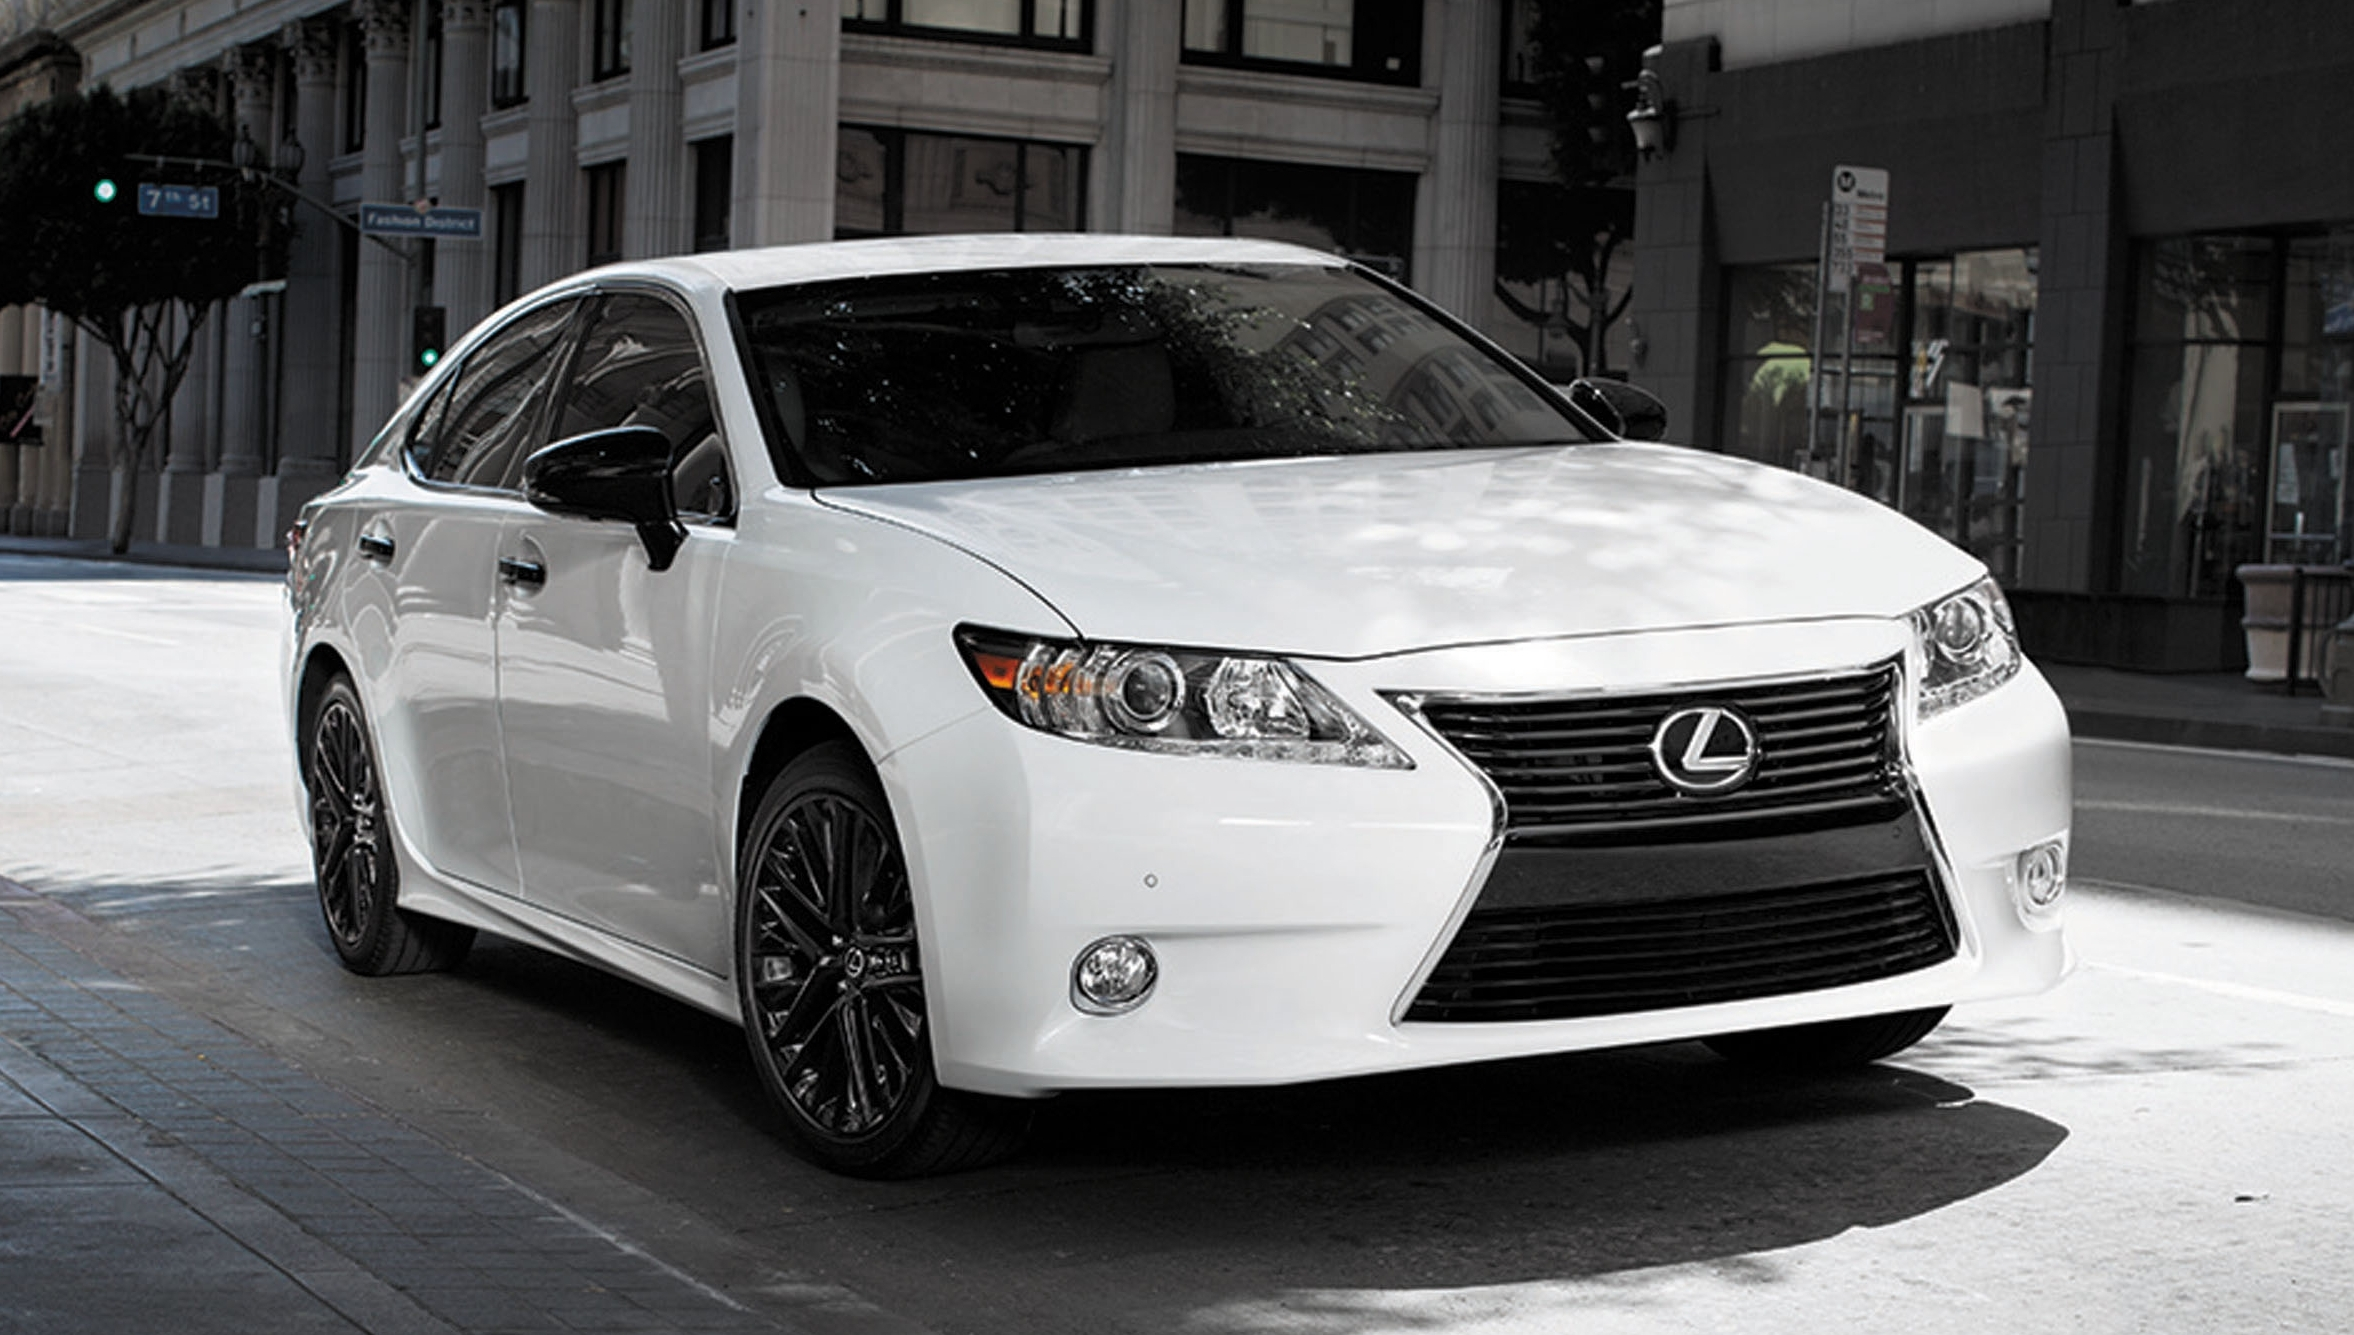 Concours D Elegance >> 2015 Lexus ES Crafted Line Edition | Top Speed